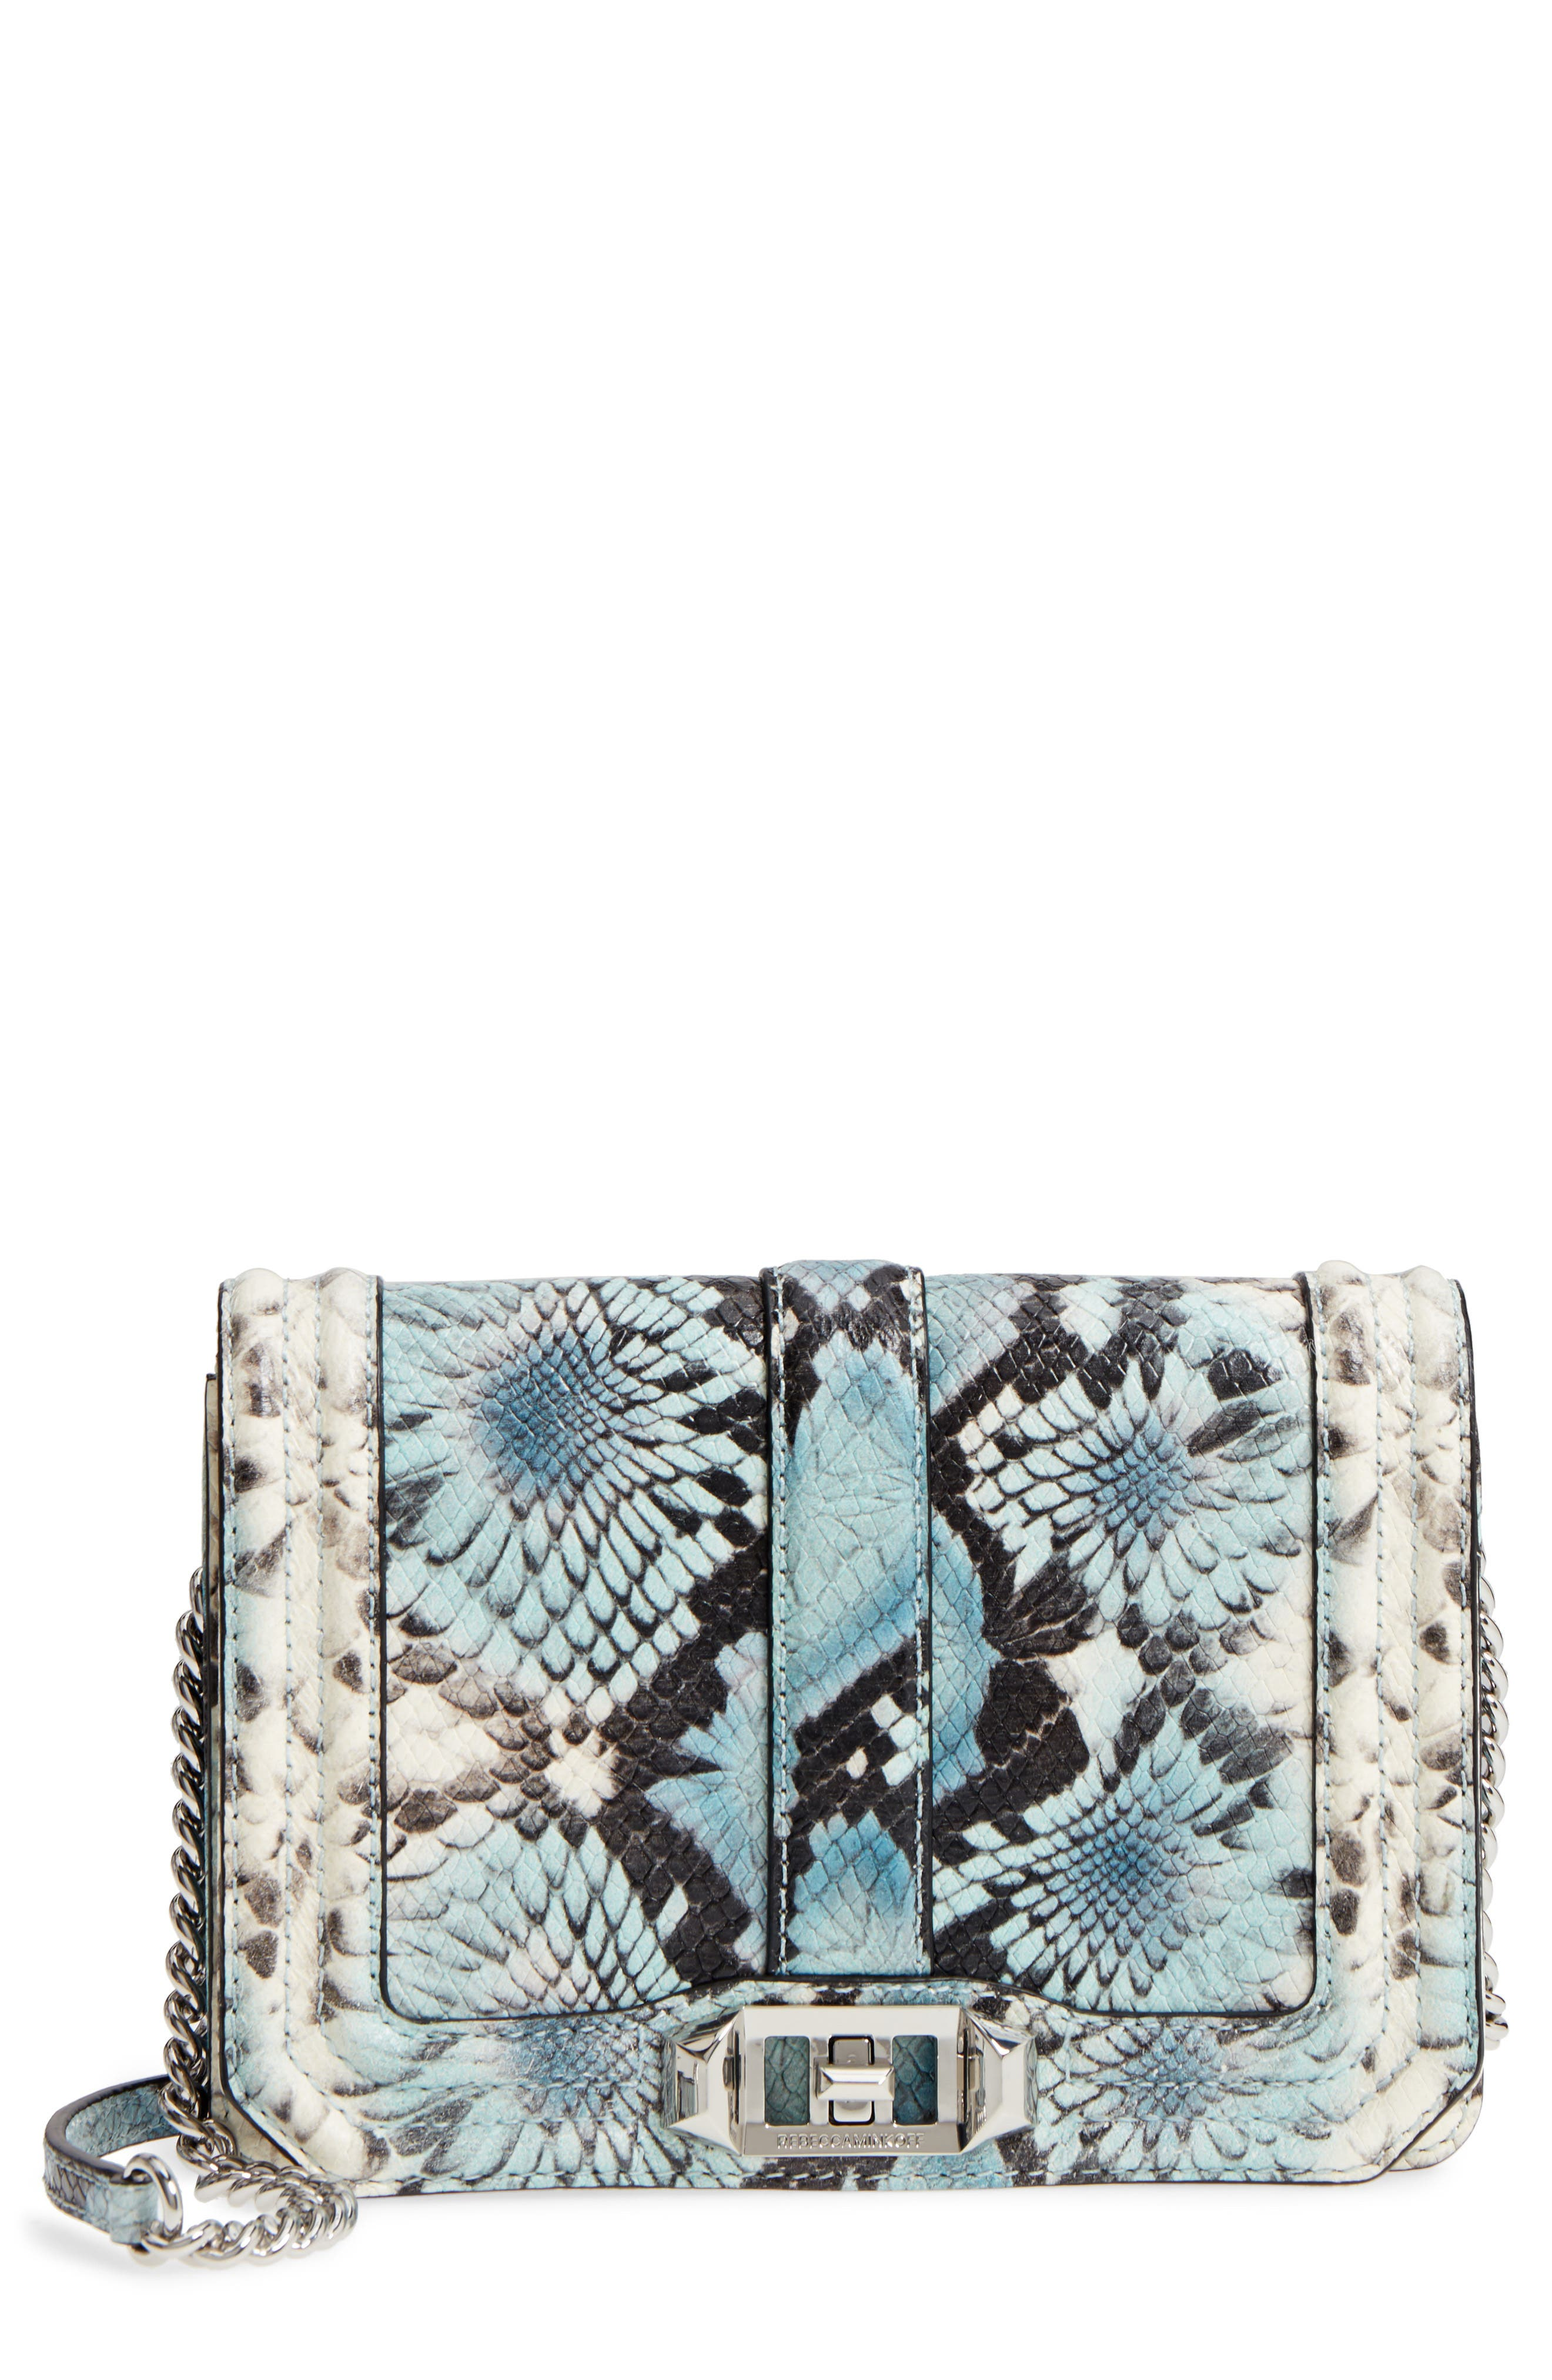 Small Love Snake Embossed Leather Crossbody Bag,                             Main thumbnail 1, color,                             470